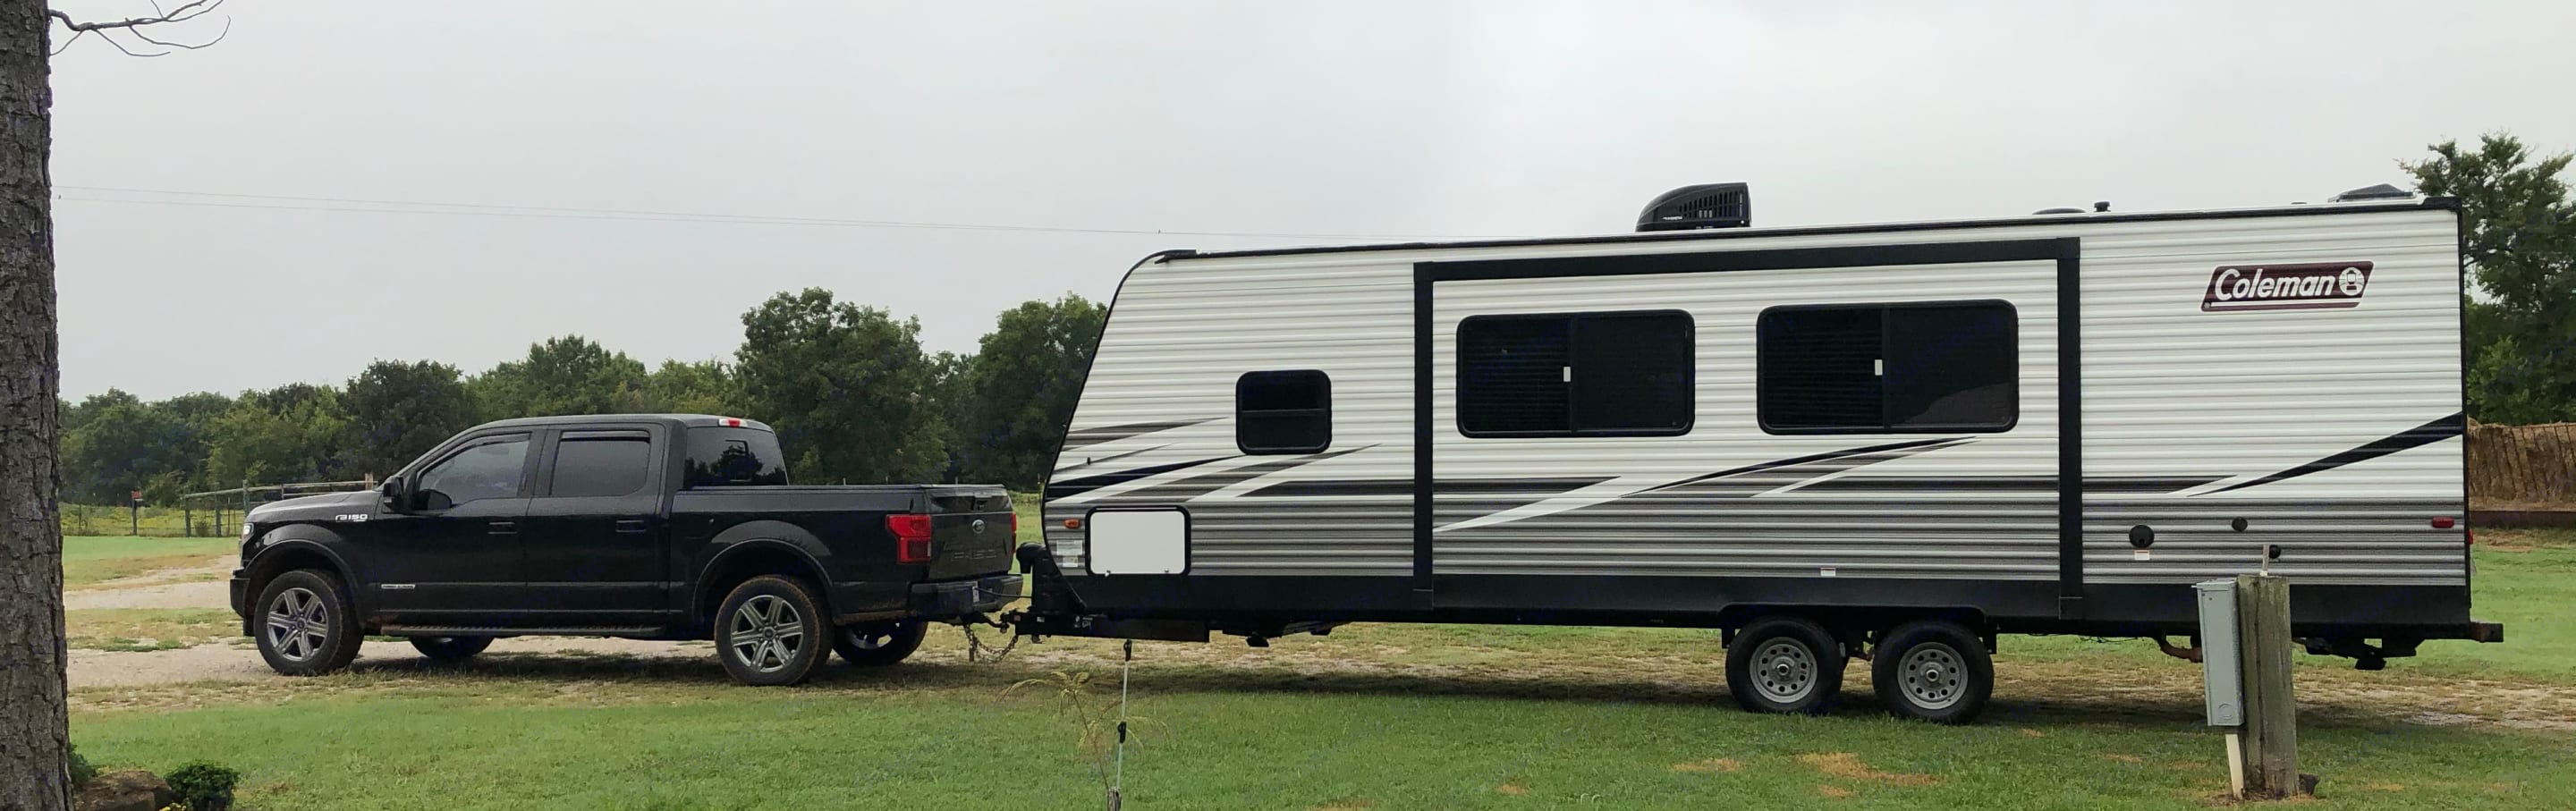 new clean camper tows great with any full size truck/suv. Dutchmen Coleman 2021